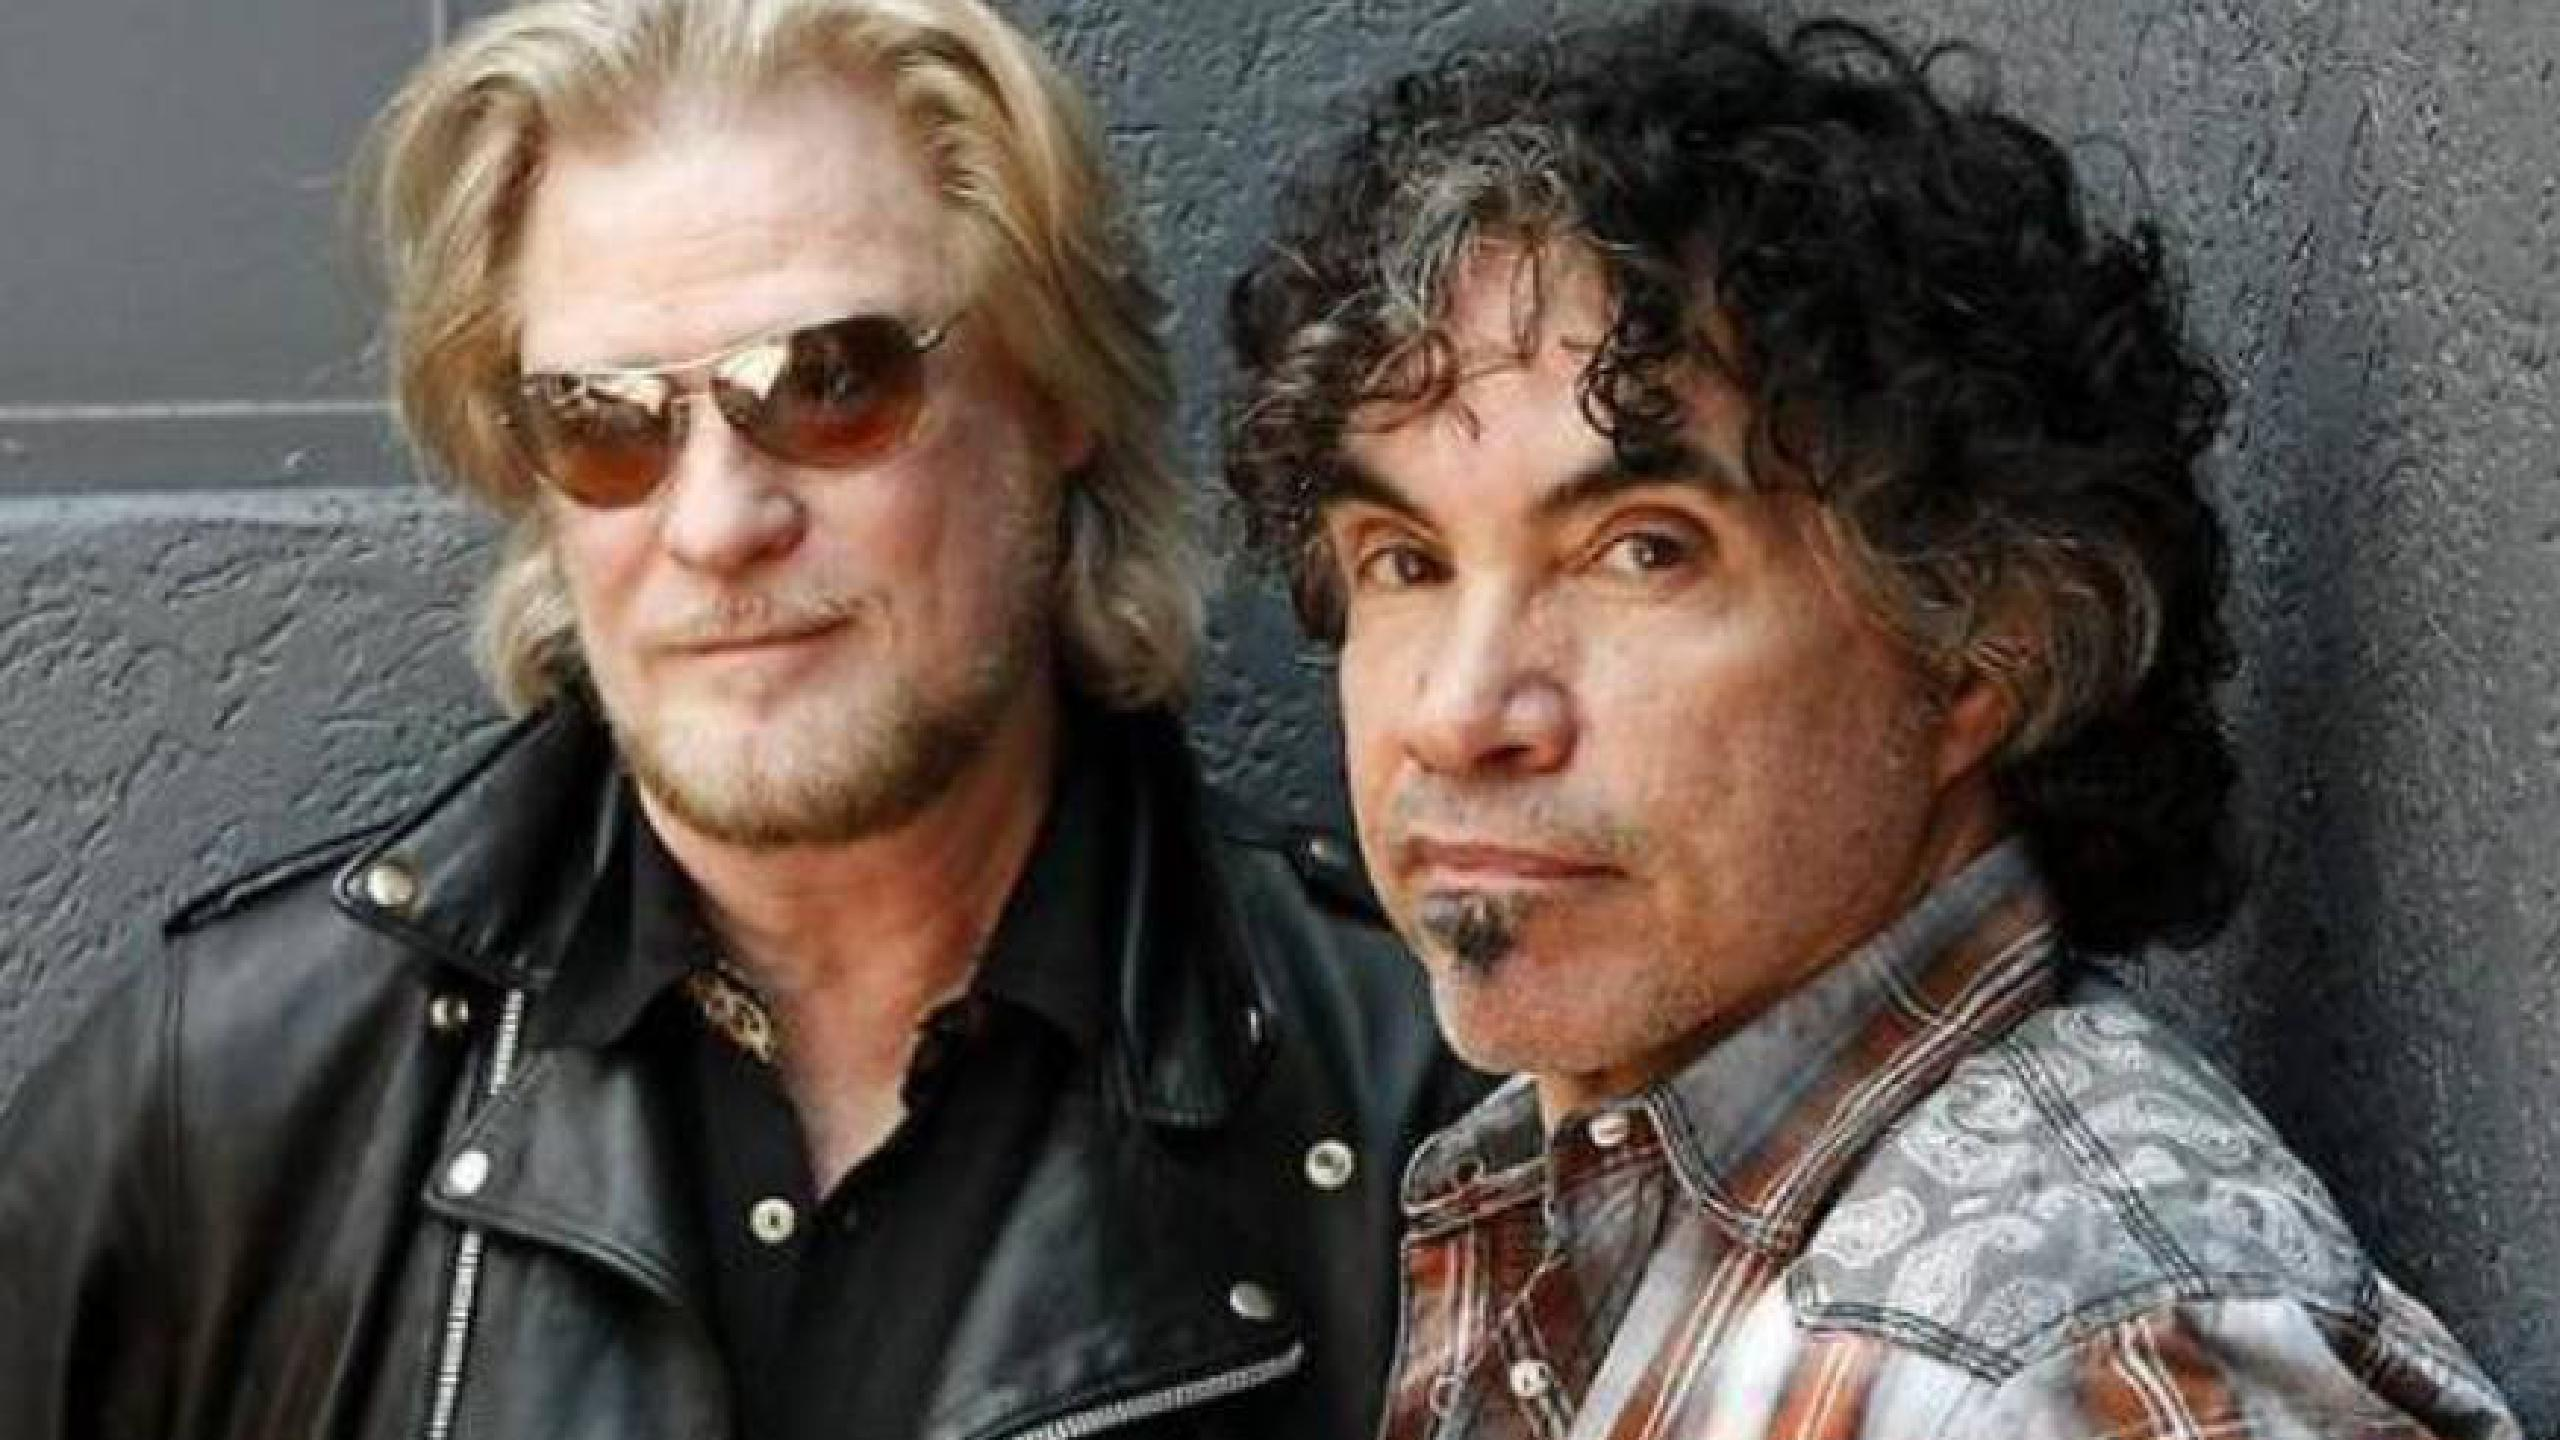 Hall And Oates Tour 2020.Hall Oates Tour Dates 2019 2020 Hall Oates Tickets And